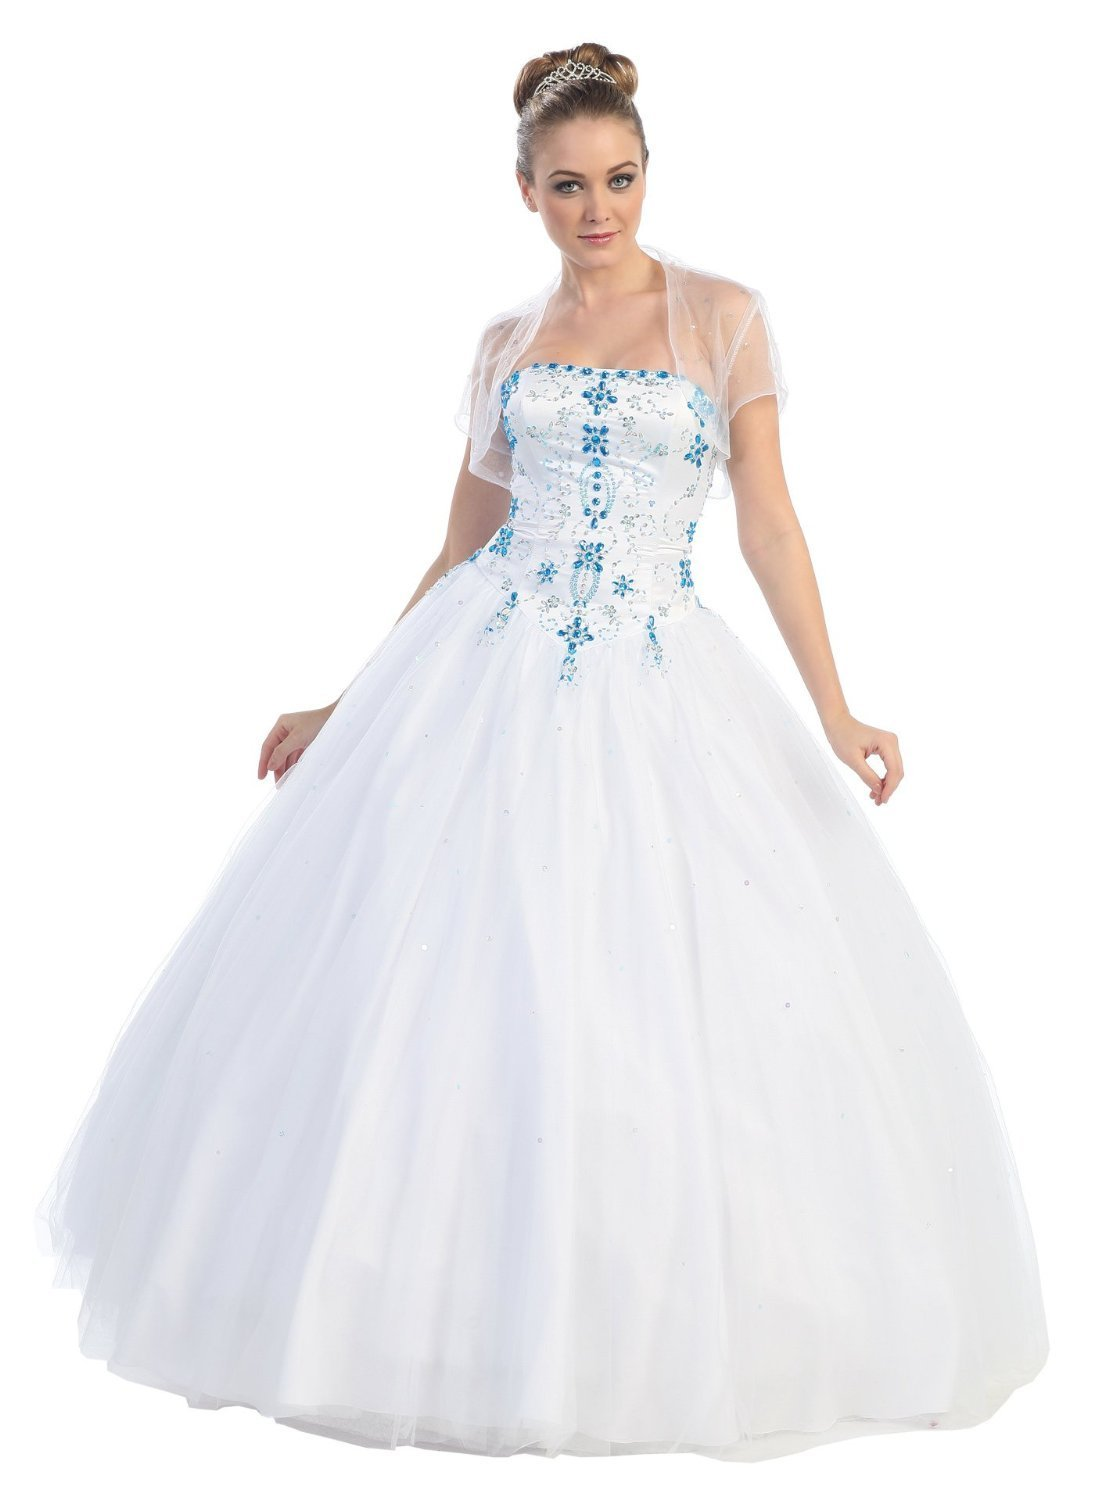 reception party dresses for the bride reception dresses for wedding Reception Party Dresses For The Bride 24